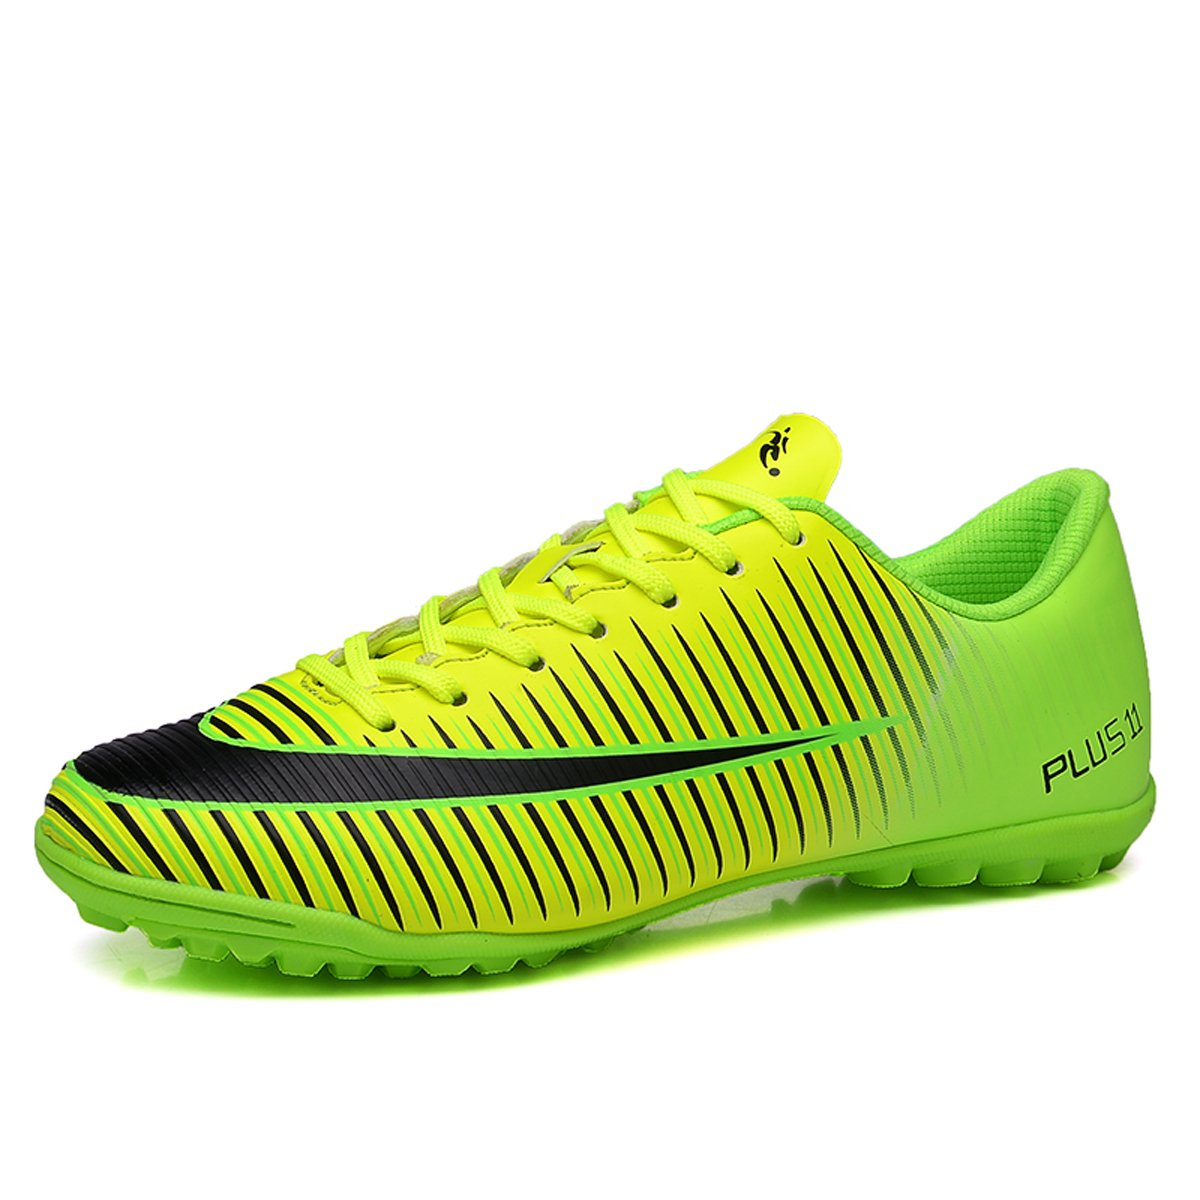 SKYMAIP Kids Soccer Shoes Men Indoor Outdoor Football Boots Athletic Turf Mundial Team Cleat Running Sport Shoes B07DMP9VPZ EU33/2 US|Green